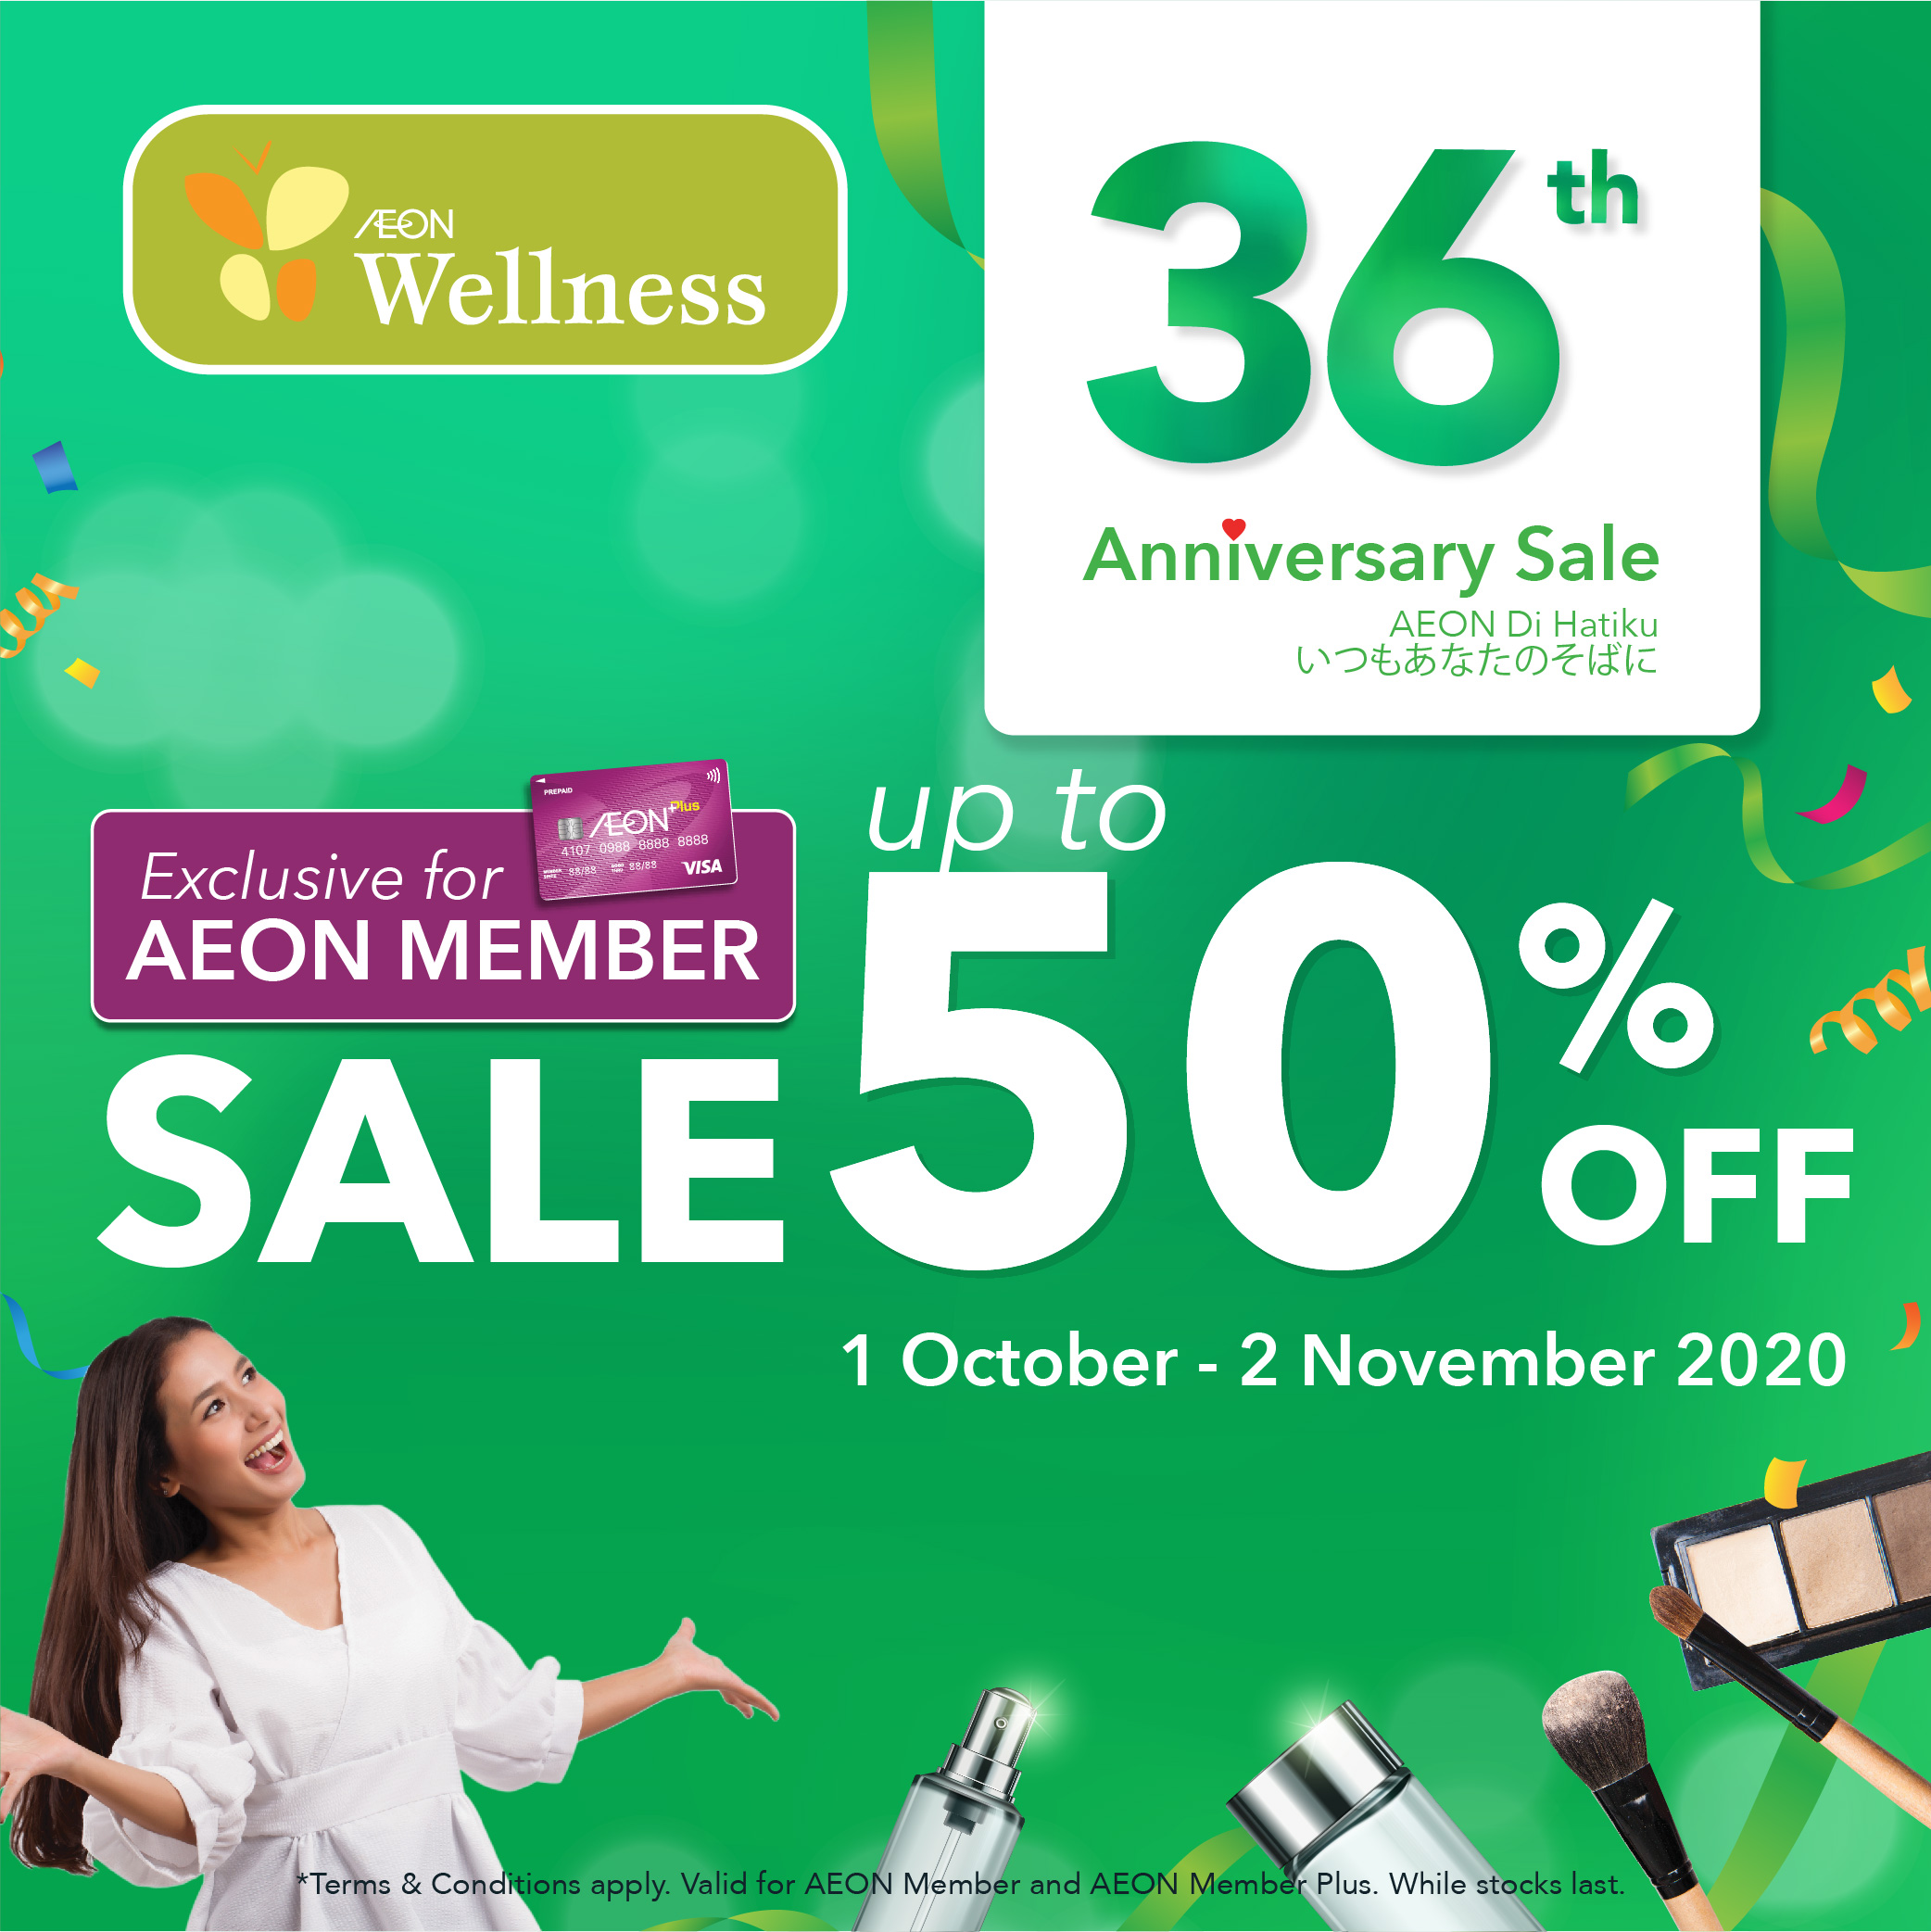 ❤️ Aeon Wellness